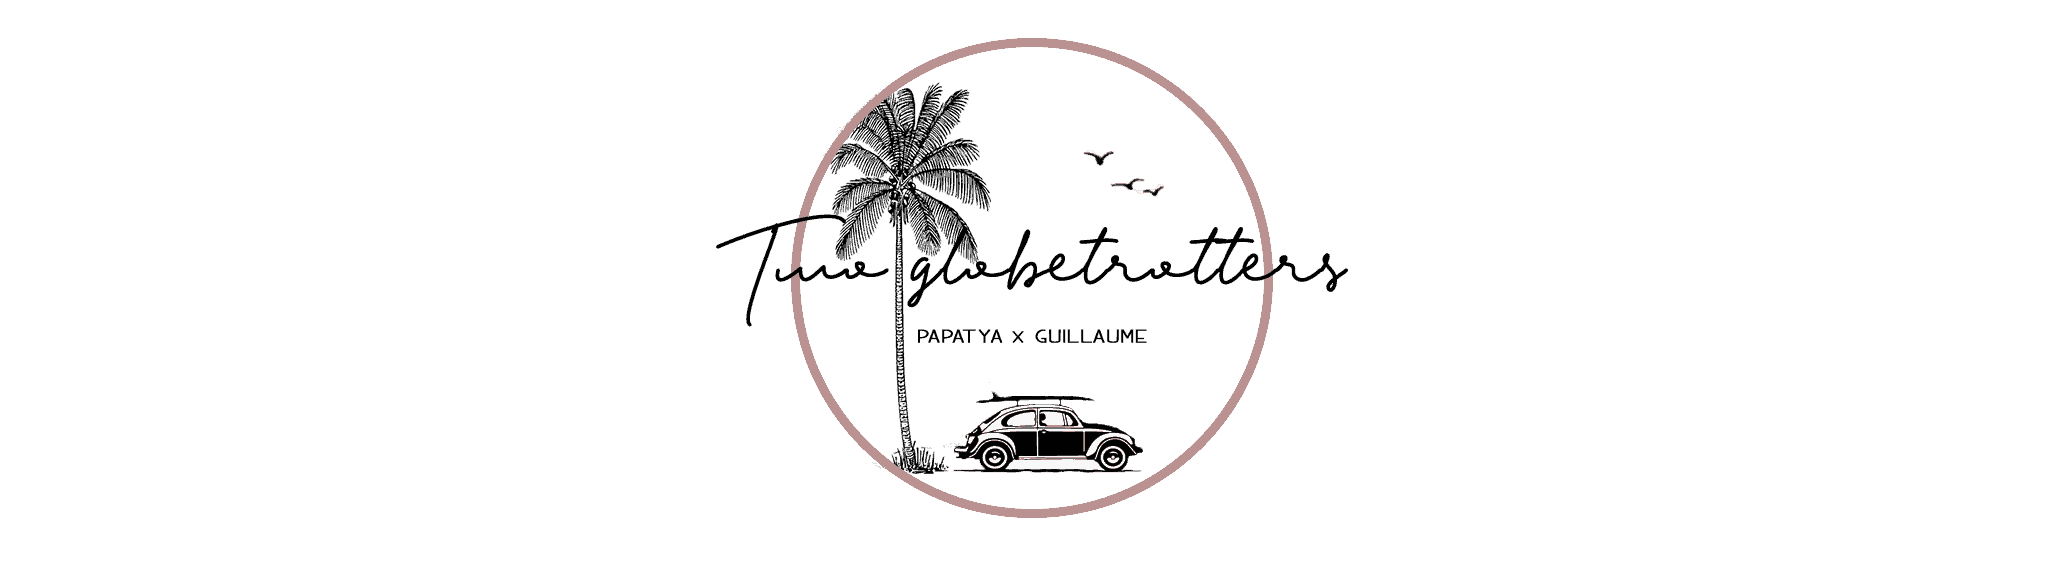 Two globetrotters